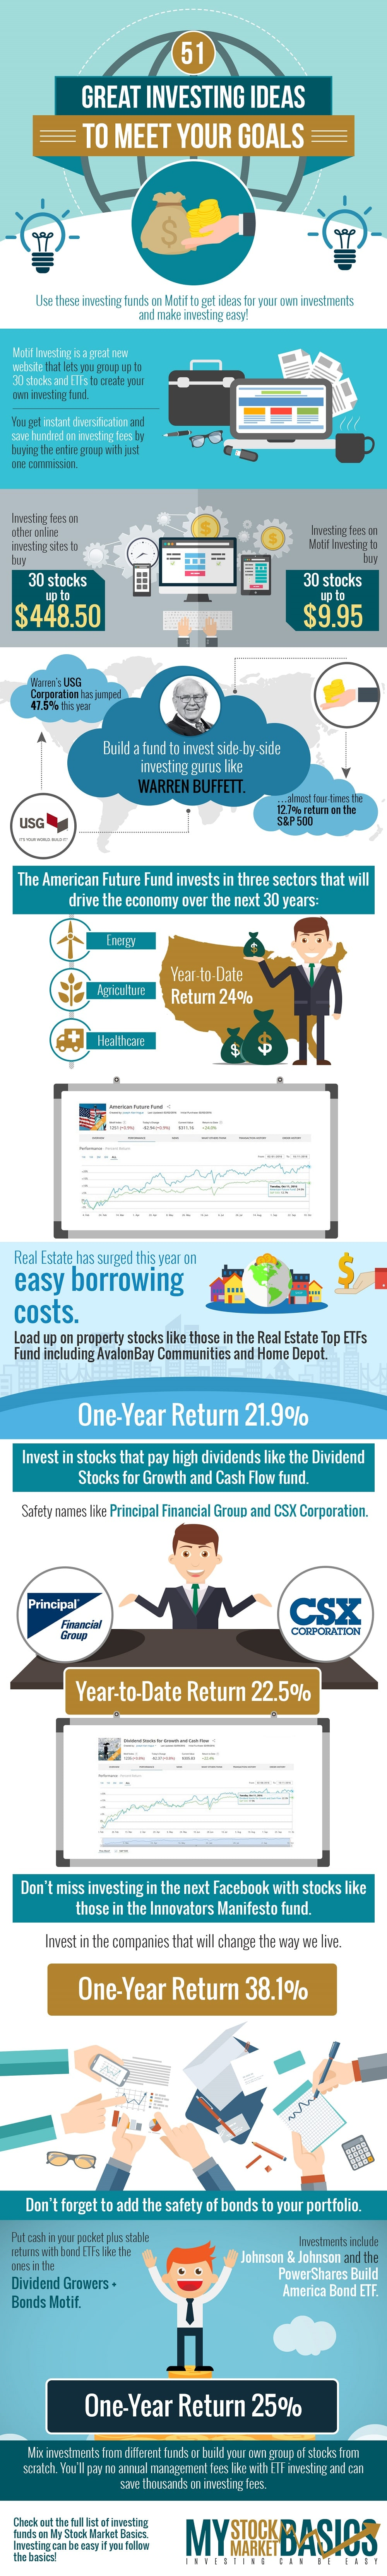 Best Site to Buy Stocks-Motif Investing